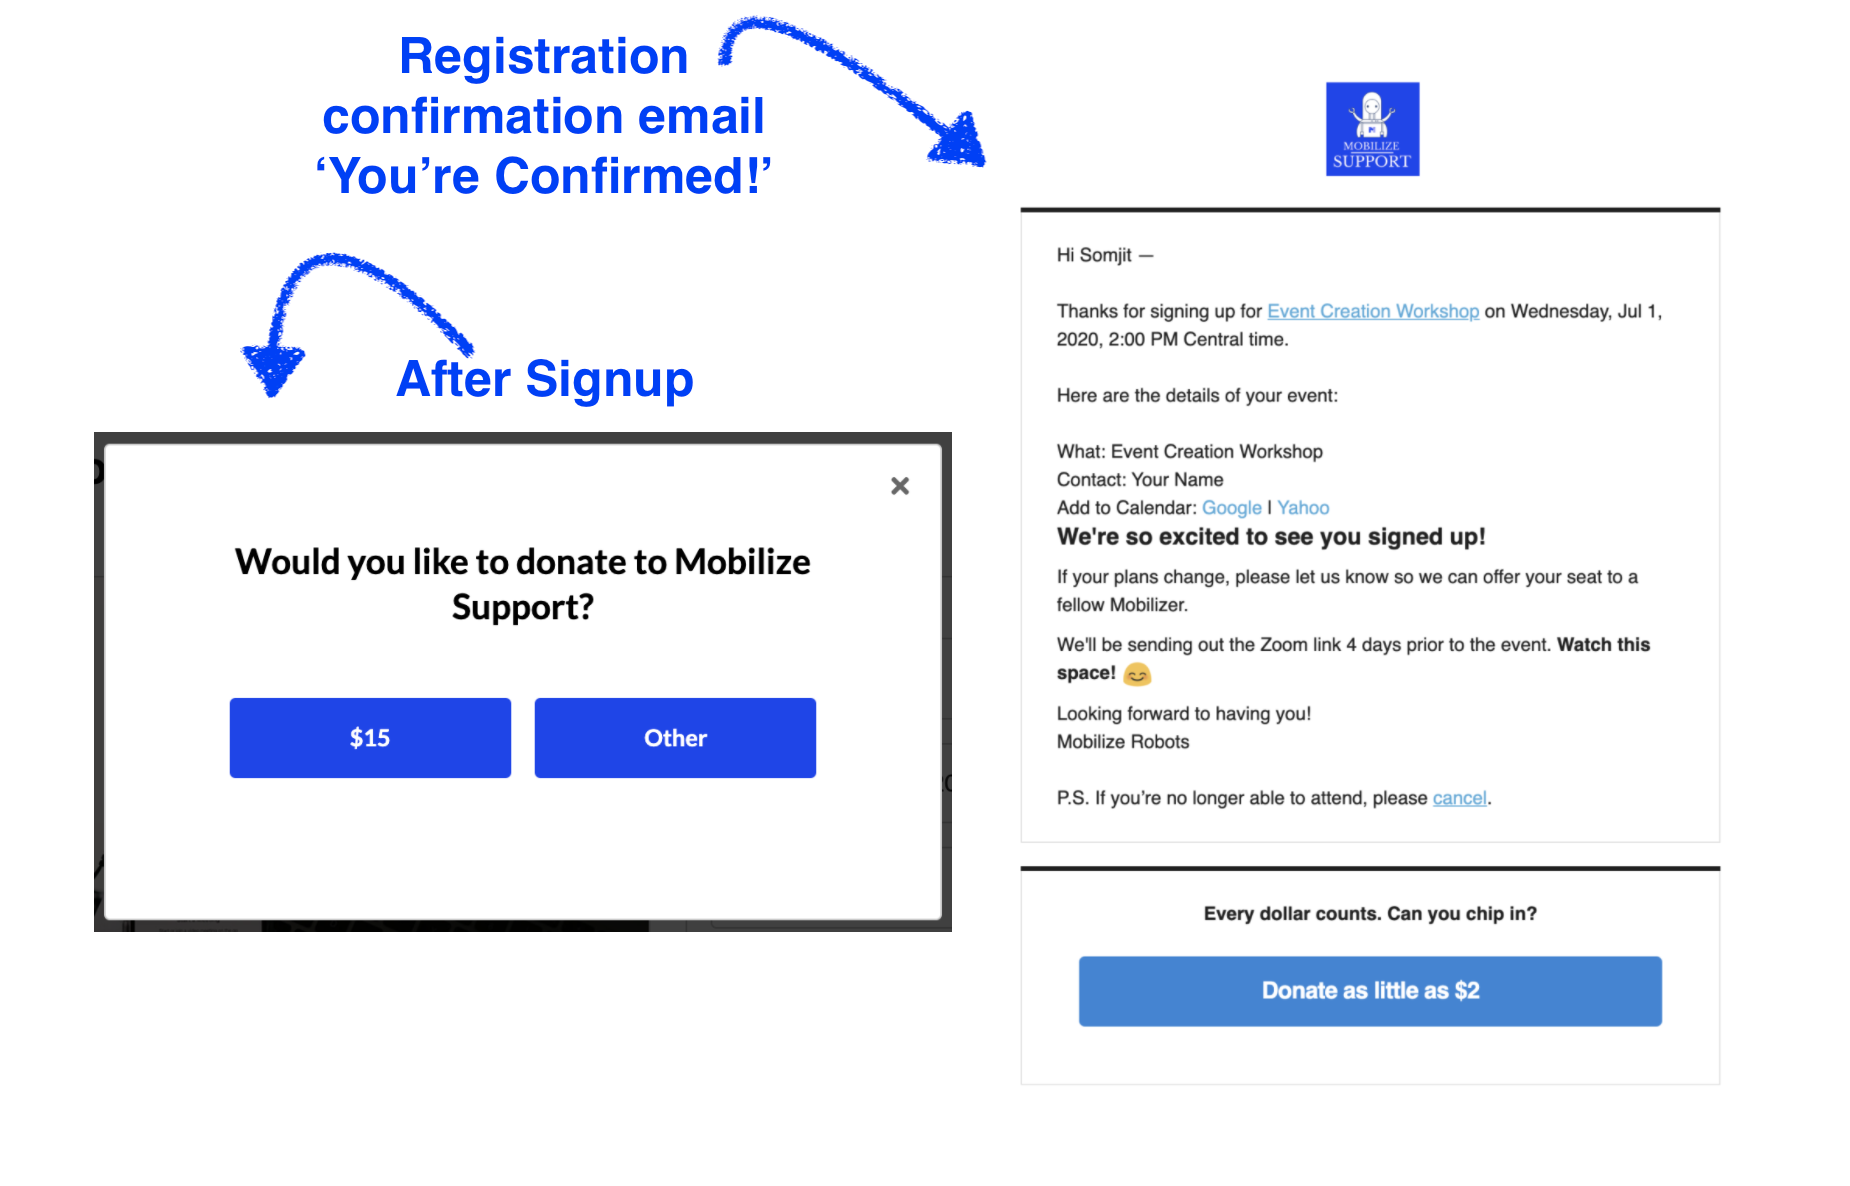 After signup modal and example registration confirmation email with donation ask